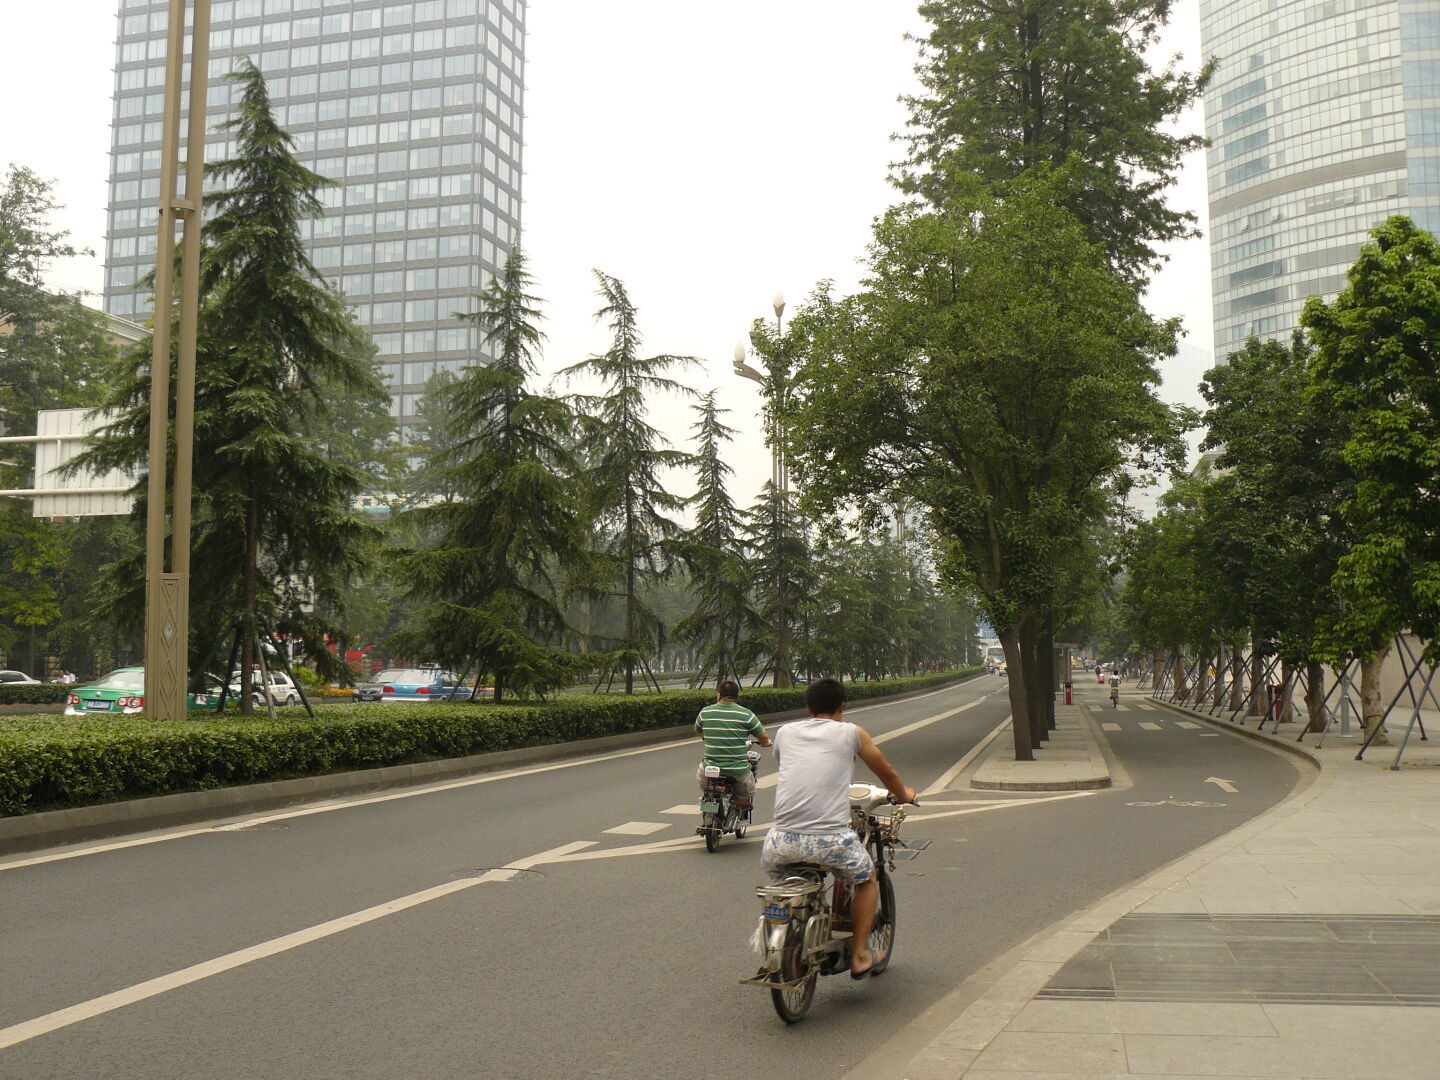 The road was split into different lanes by rows of trees. There is a lot of green throughout the city.